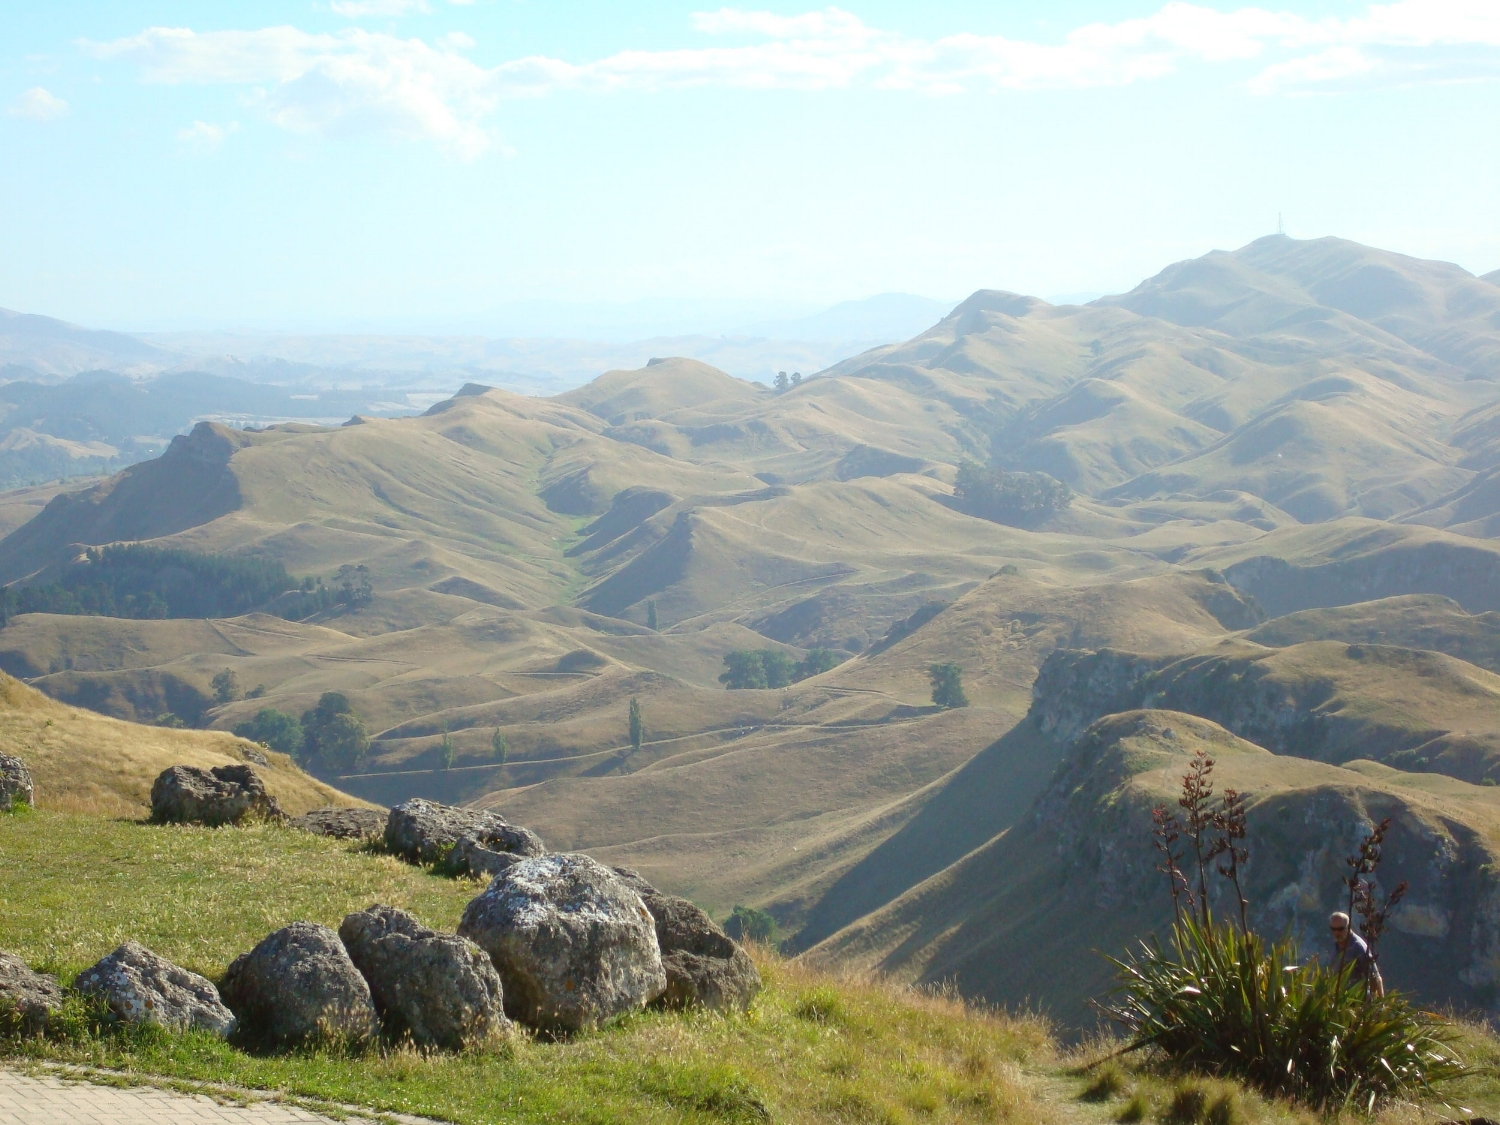 This photo is from another year, when it was much greener in Hawke's Bay. It's such a beautiful view from the top of TeMata Peak that I just had to add it in here too!